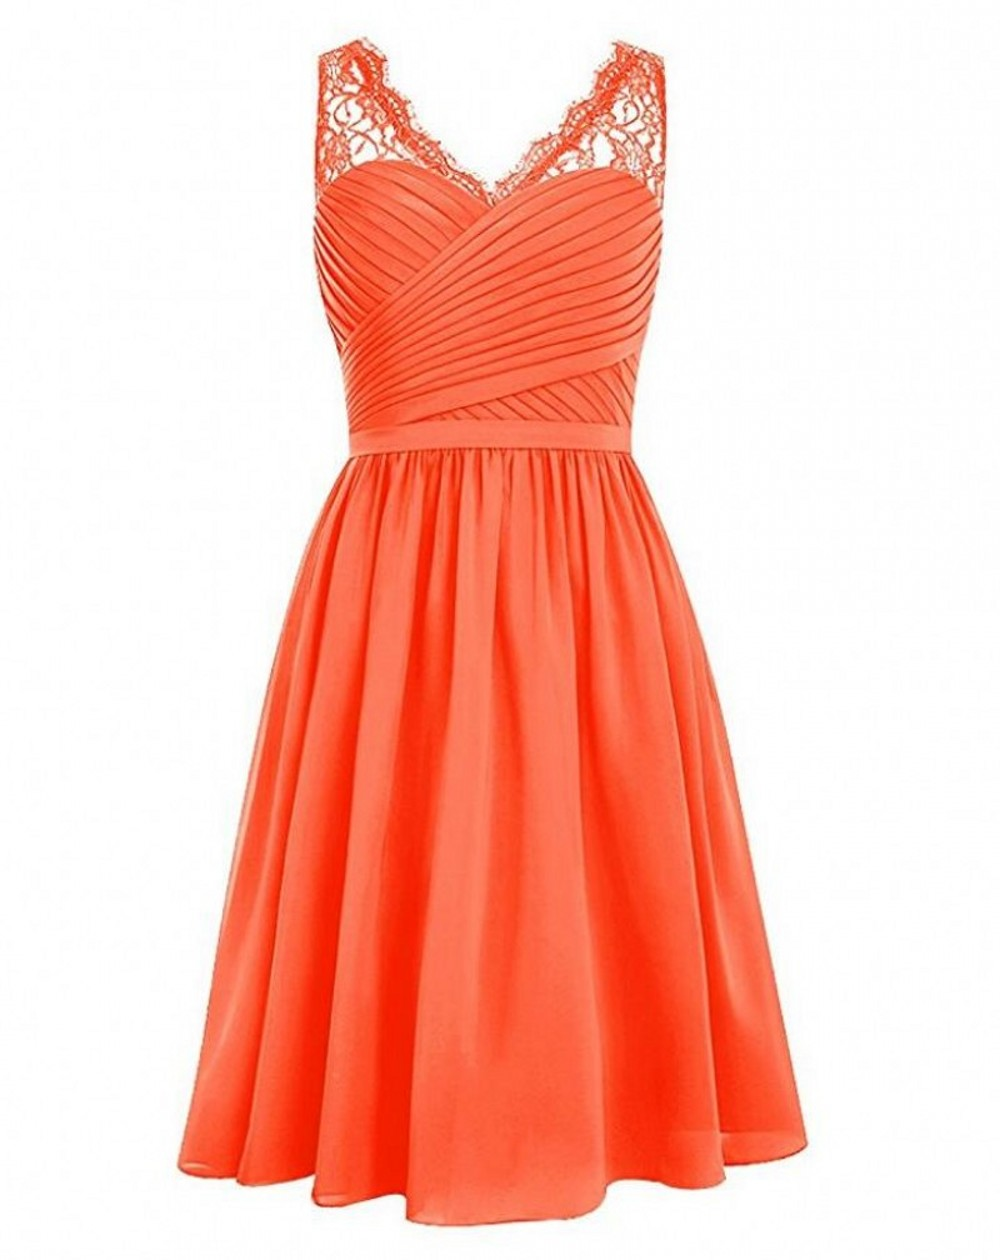 Popular orange and pink bridesmaid dresses buy cheap orange and hot sale cheap orange black pink bridesmaid dresses v neck sleeveless lace shoulder knee length ombrellifo Images